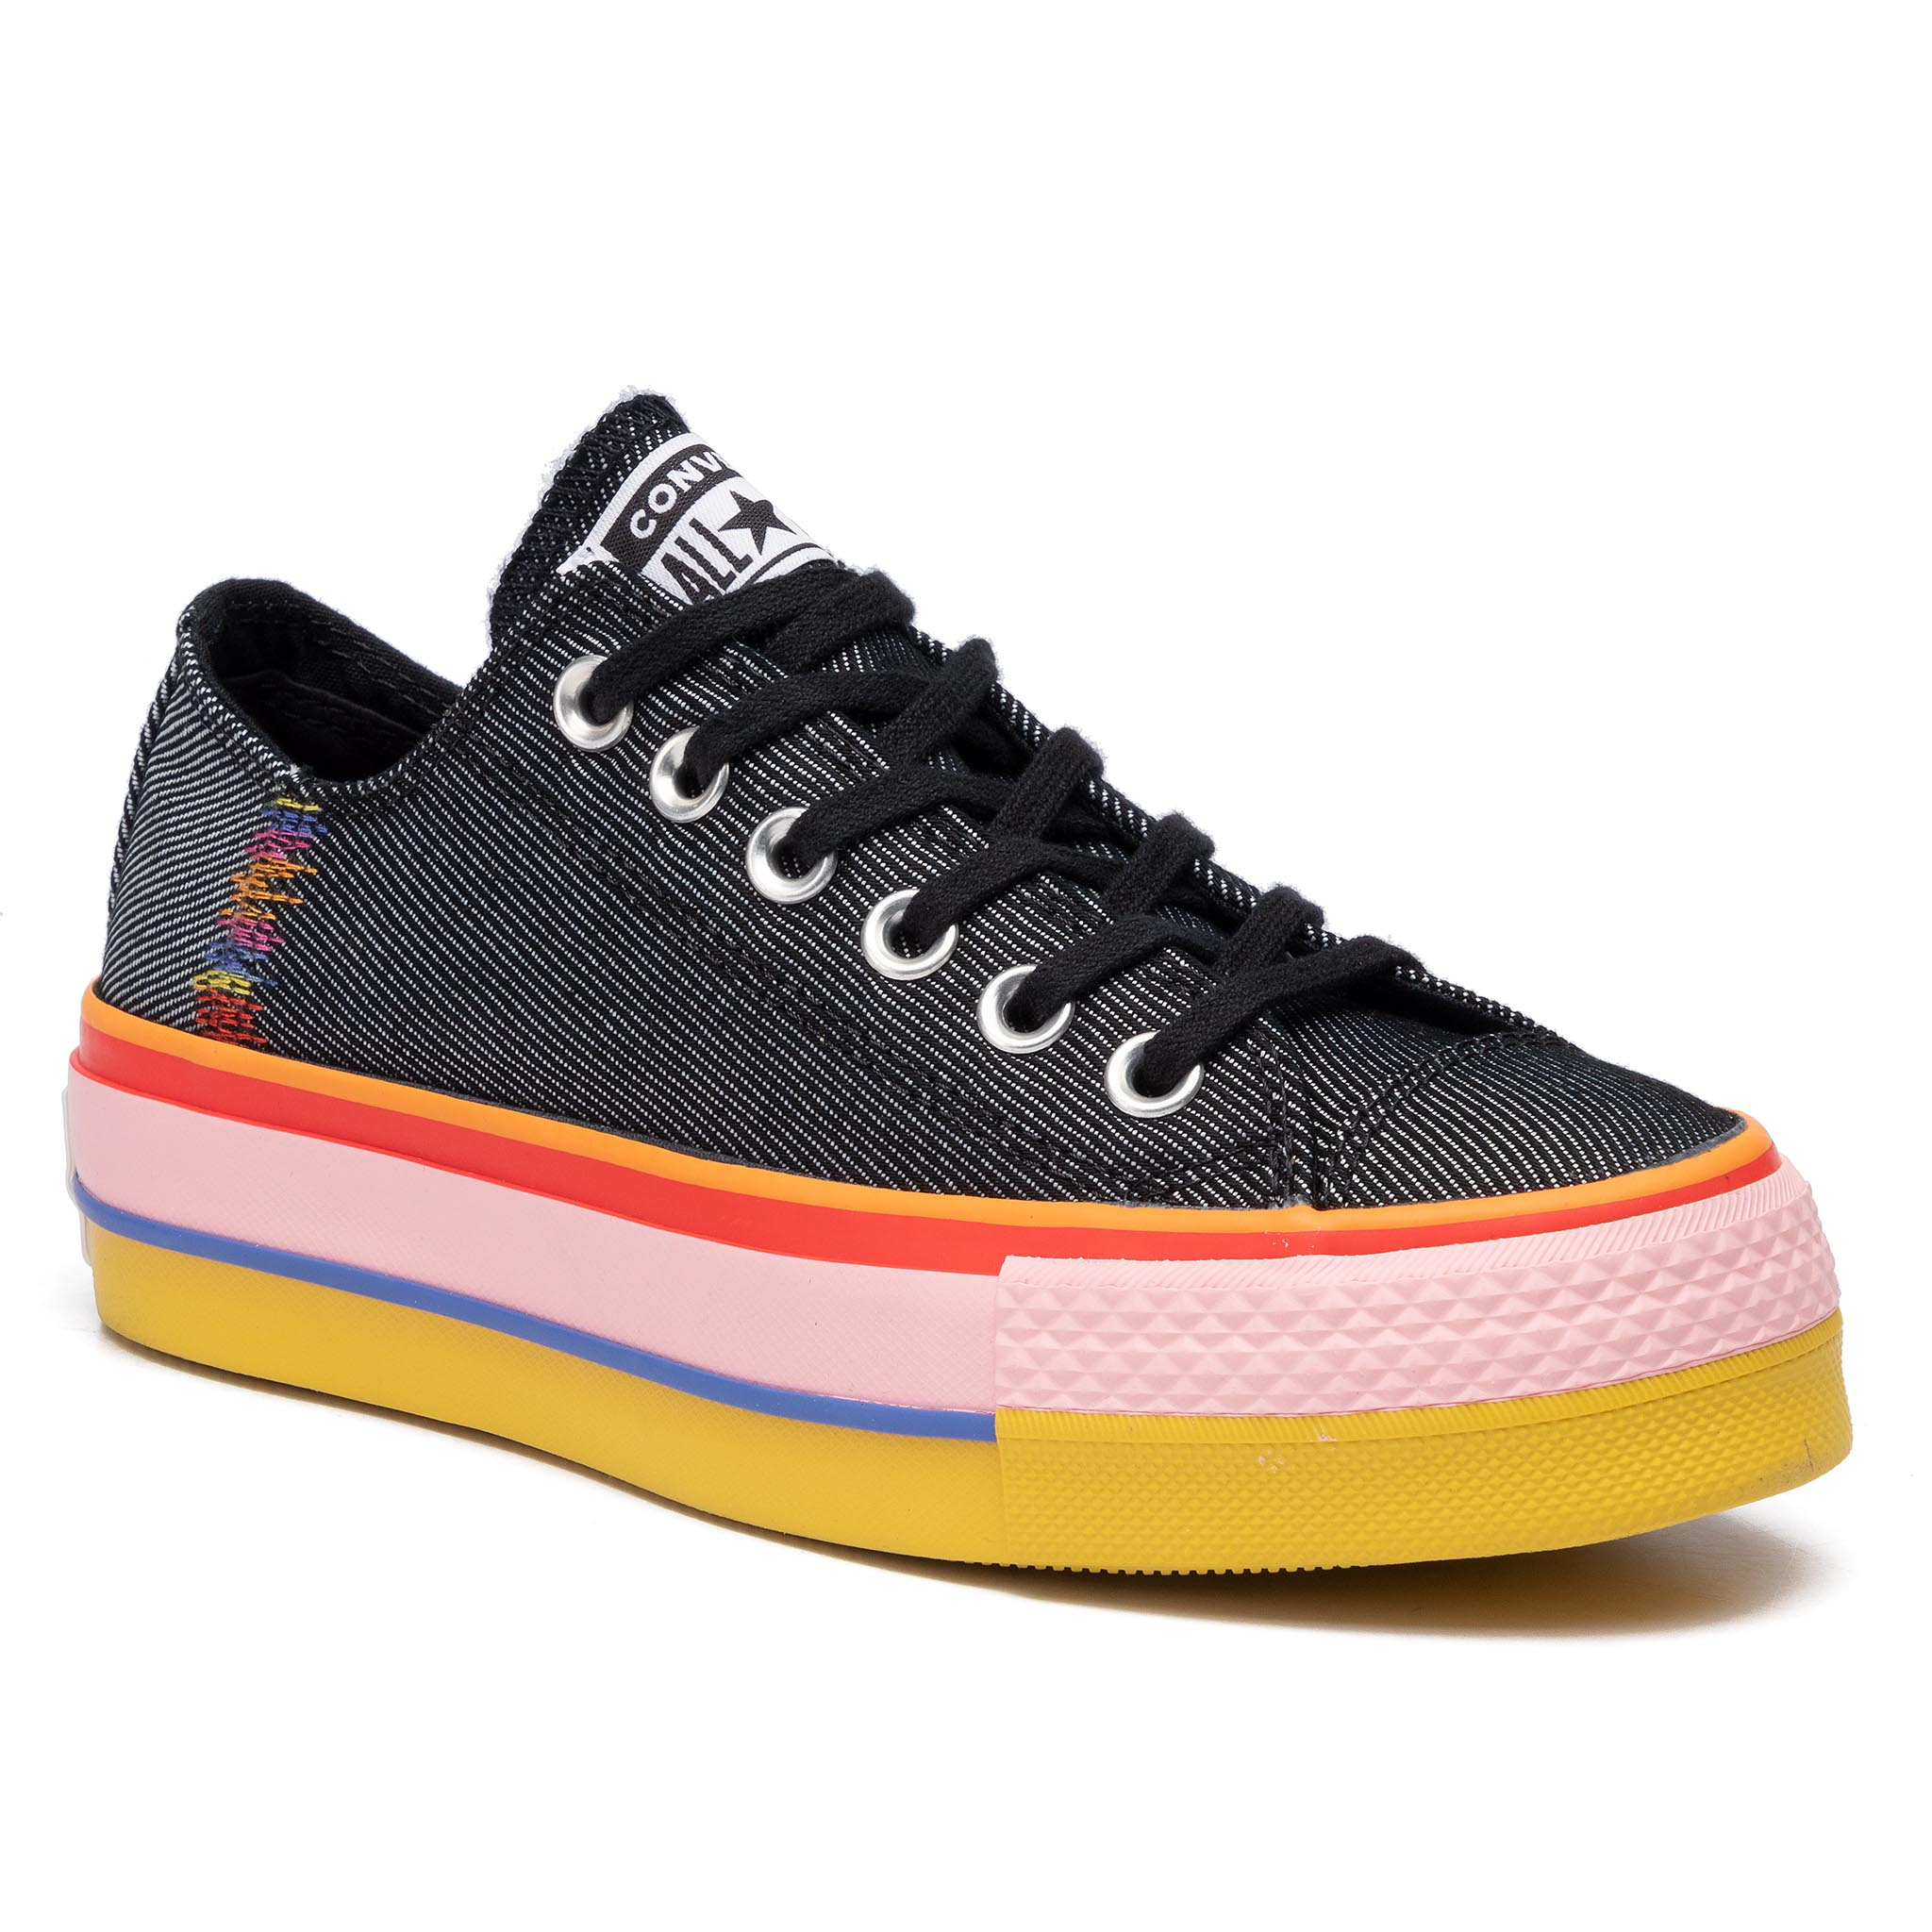 Tenisówki CONVERSE - Cast Lift Ox 564994C Black/White/Coastal Pink